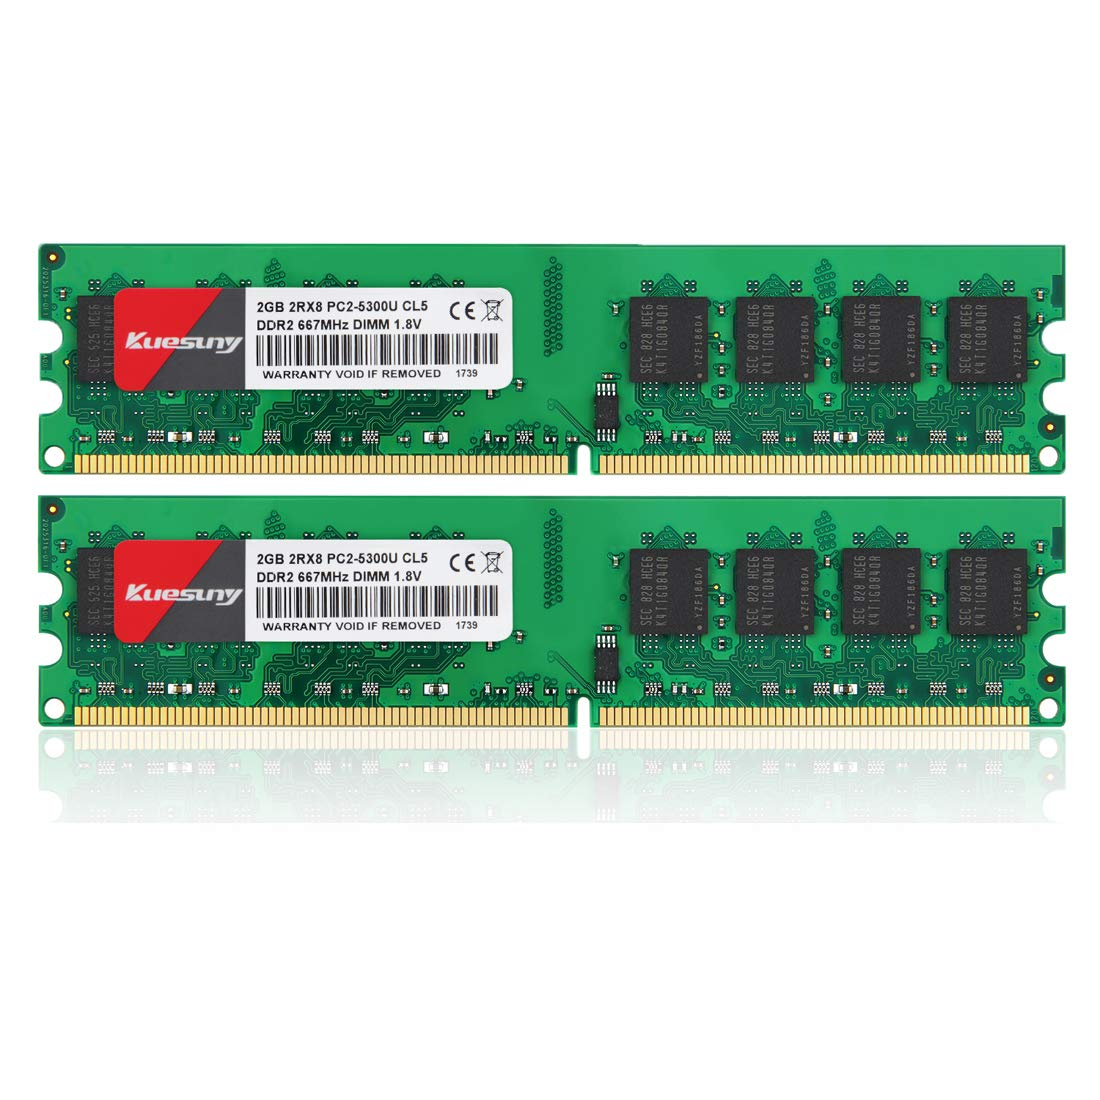 Memoria Ram 4gb Kit (2gbx2) Ddr2 667 Dimm Kuesuny Pc2-5300/pc2-5300u Cl5 240-pin Non-ecc Unbuffered Modules